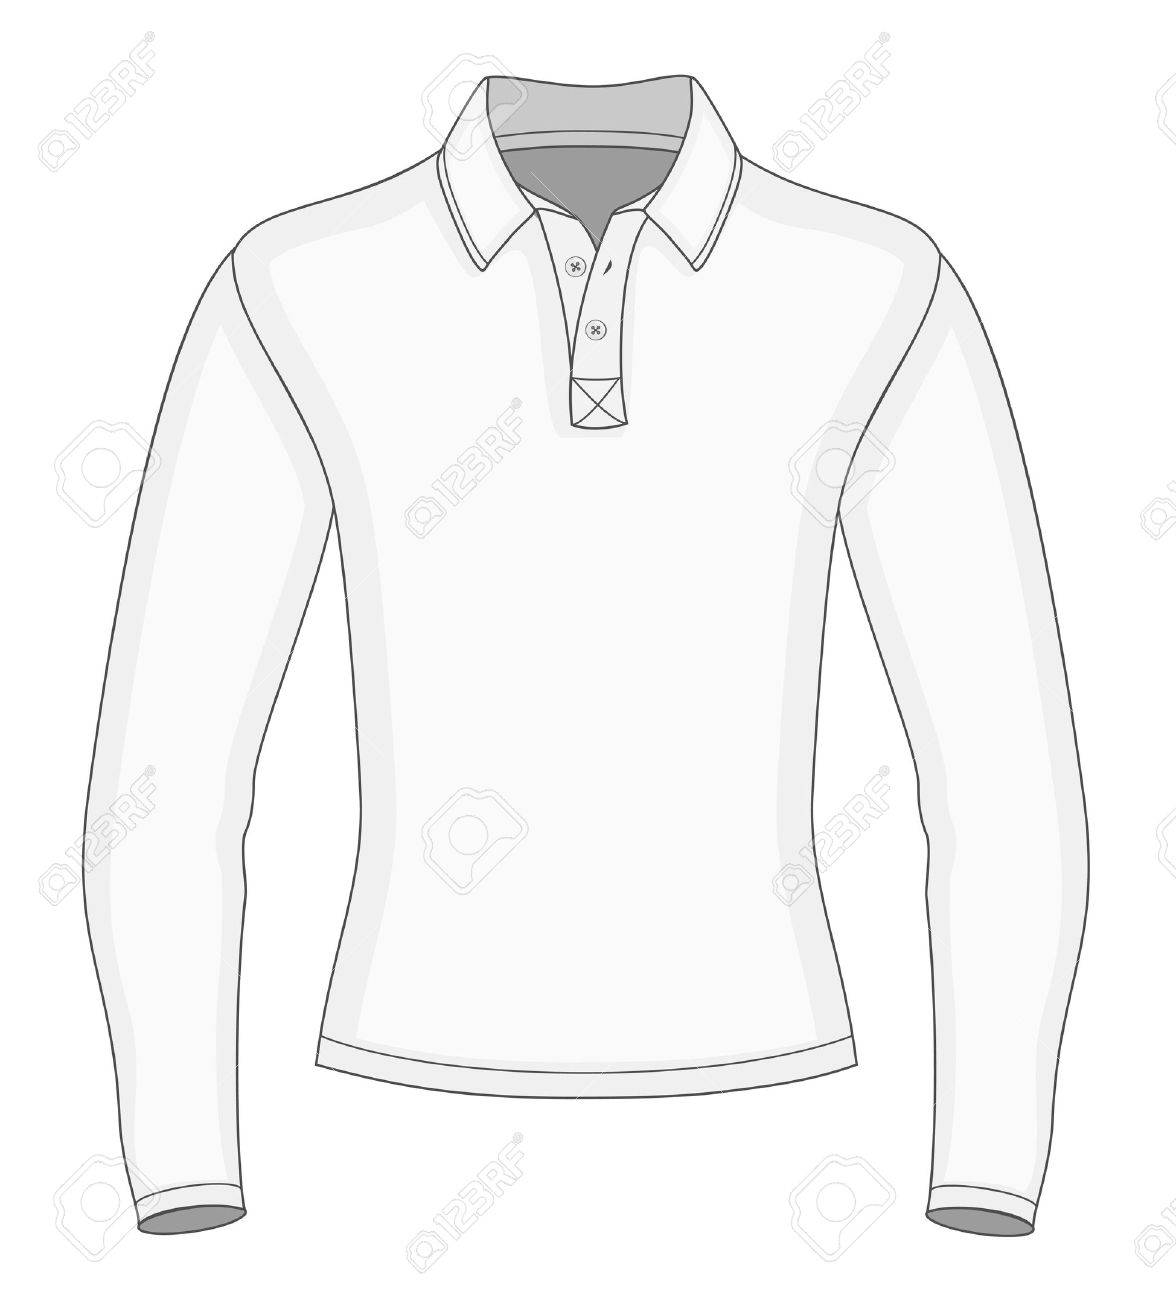 Free Polo Shirt Clipart dress shirt, Download Free Clip Art on Owips.com.